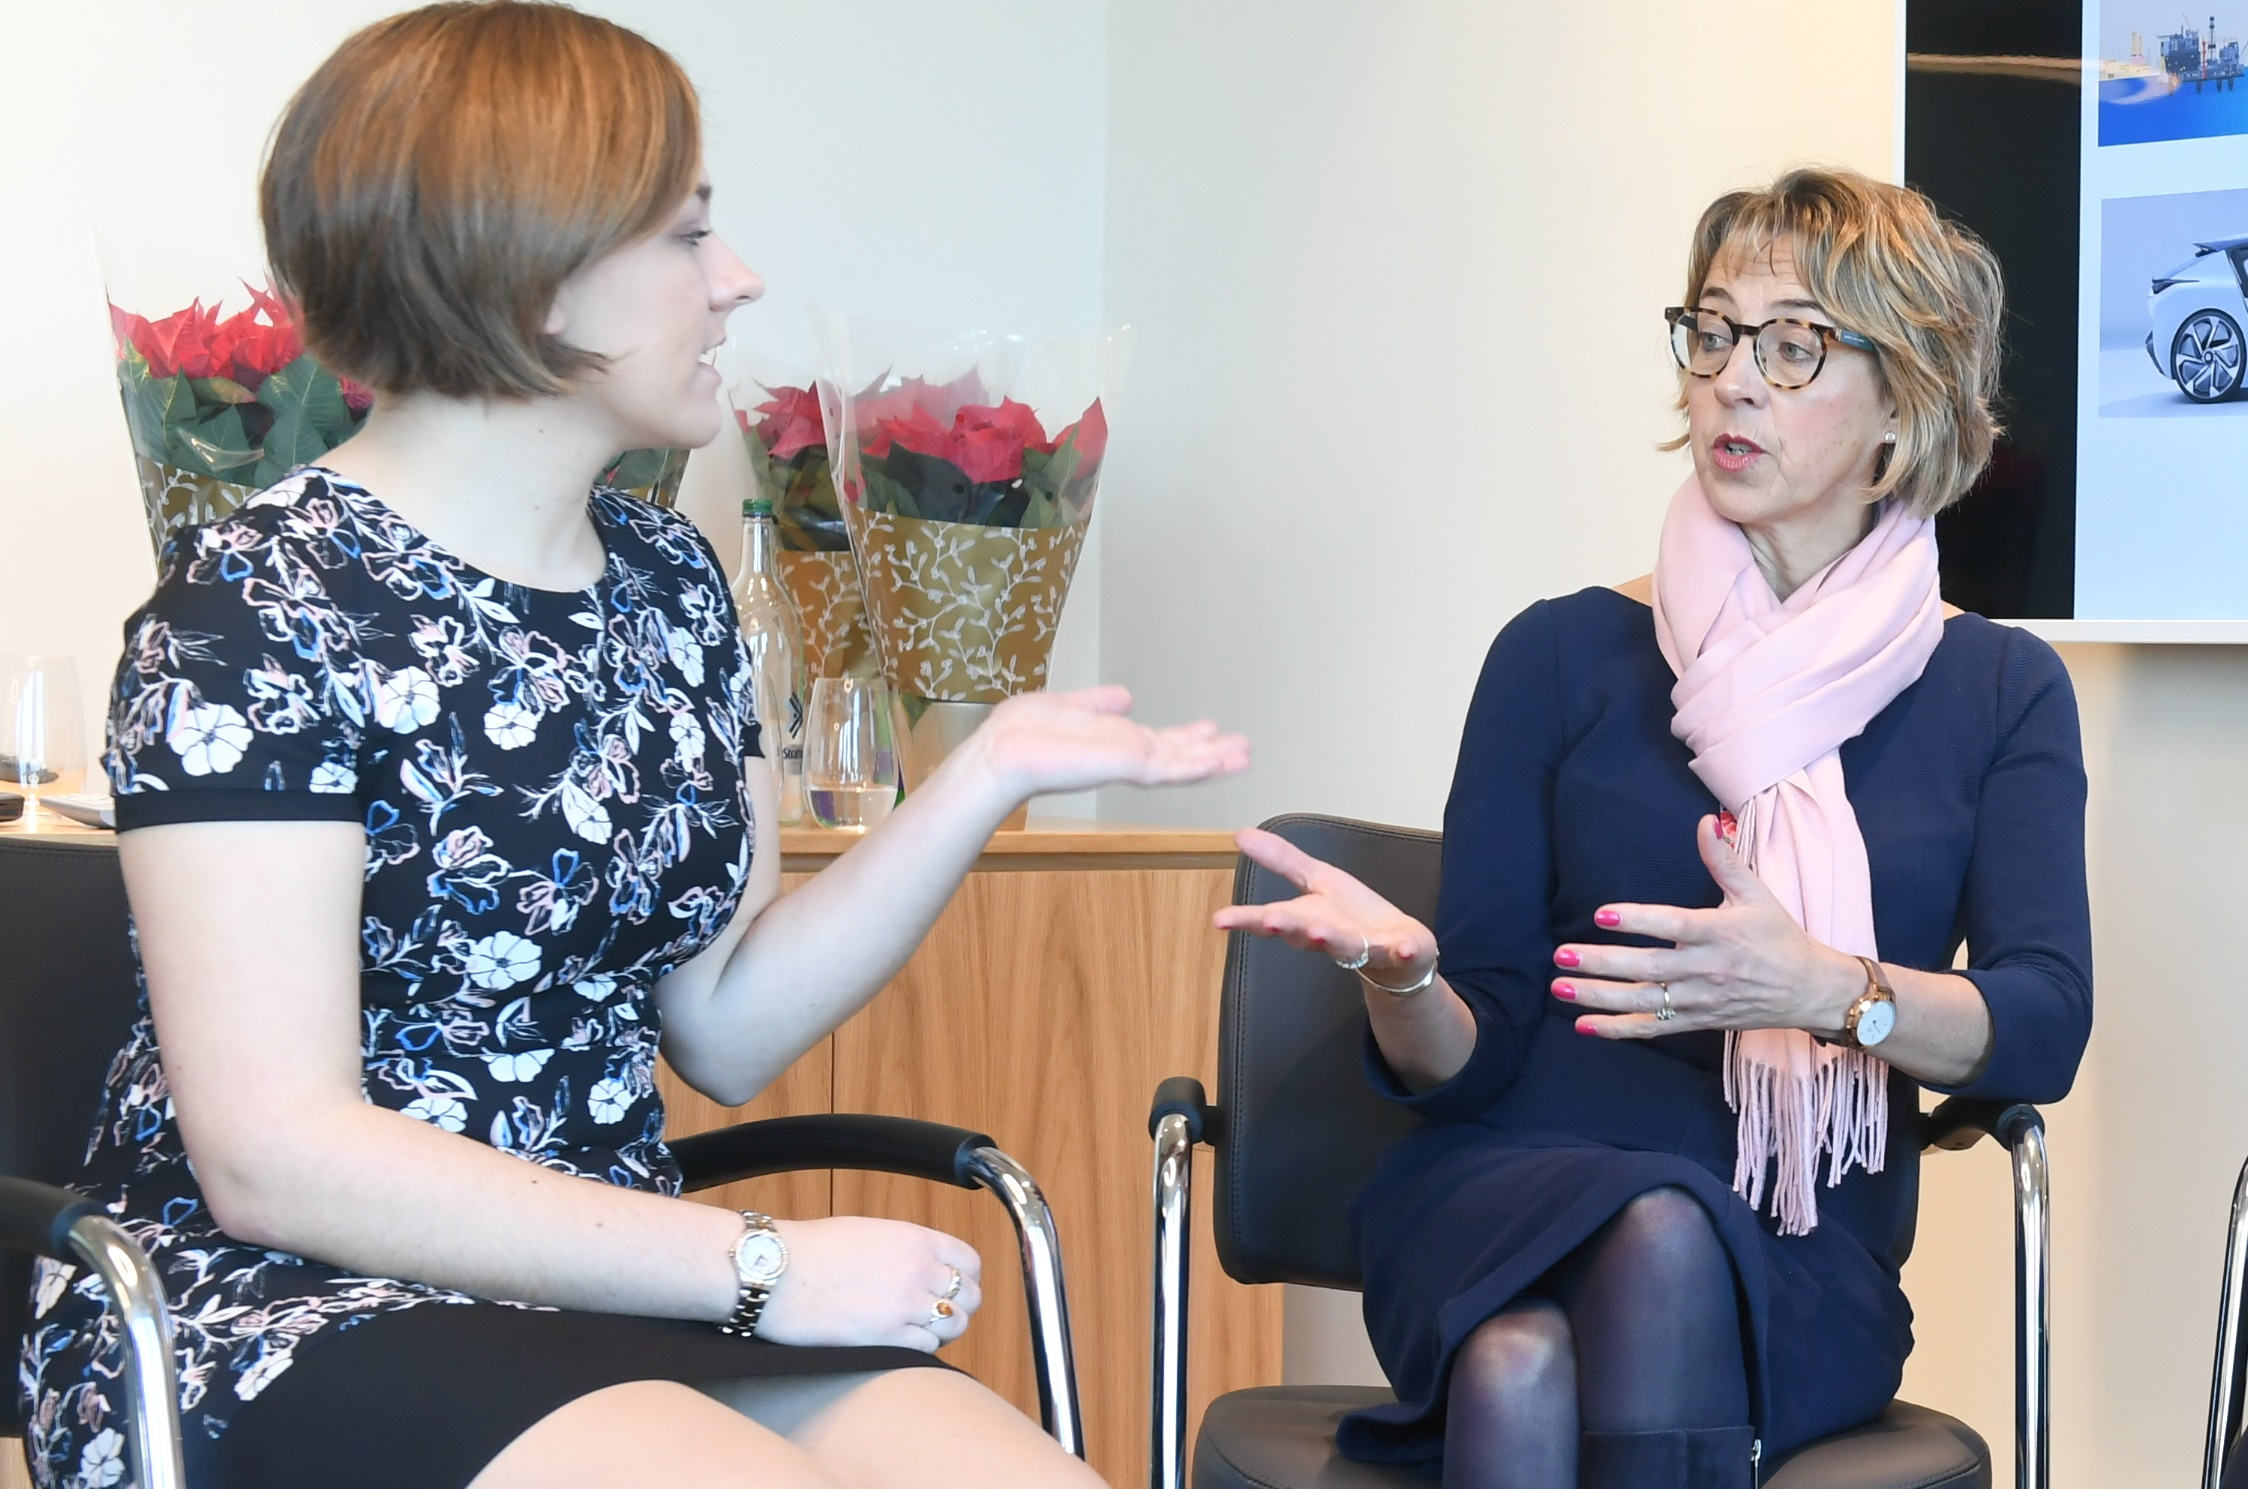 Left, Carla Carla Taylor – Software Engineer and former apprentice at Royal Bank of Scotland and Prof Elizabeth Gammie (Right) – Head of Business School at Robert Gordon University.